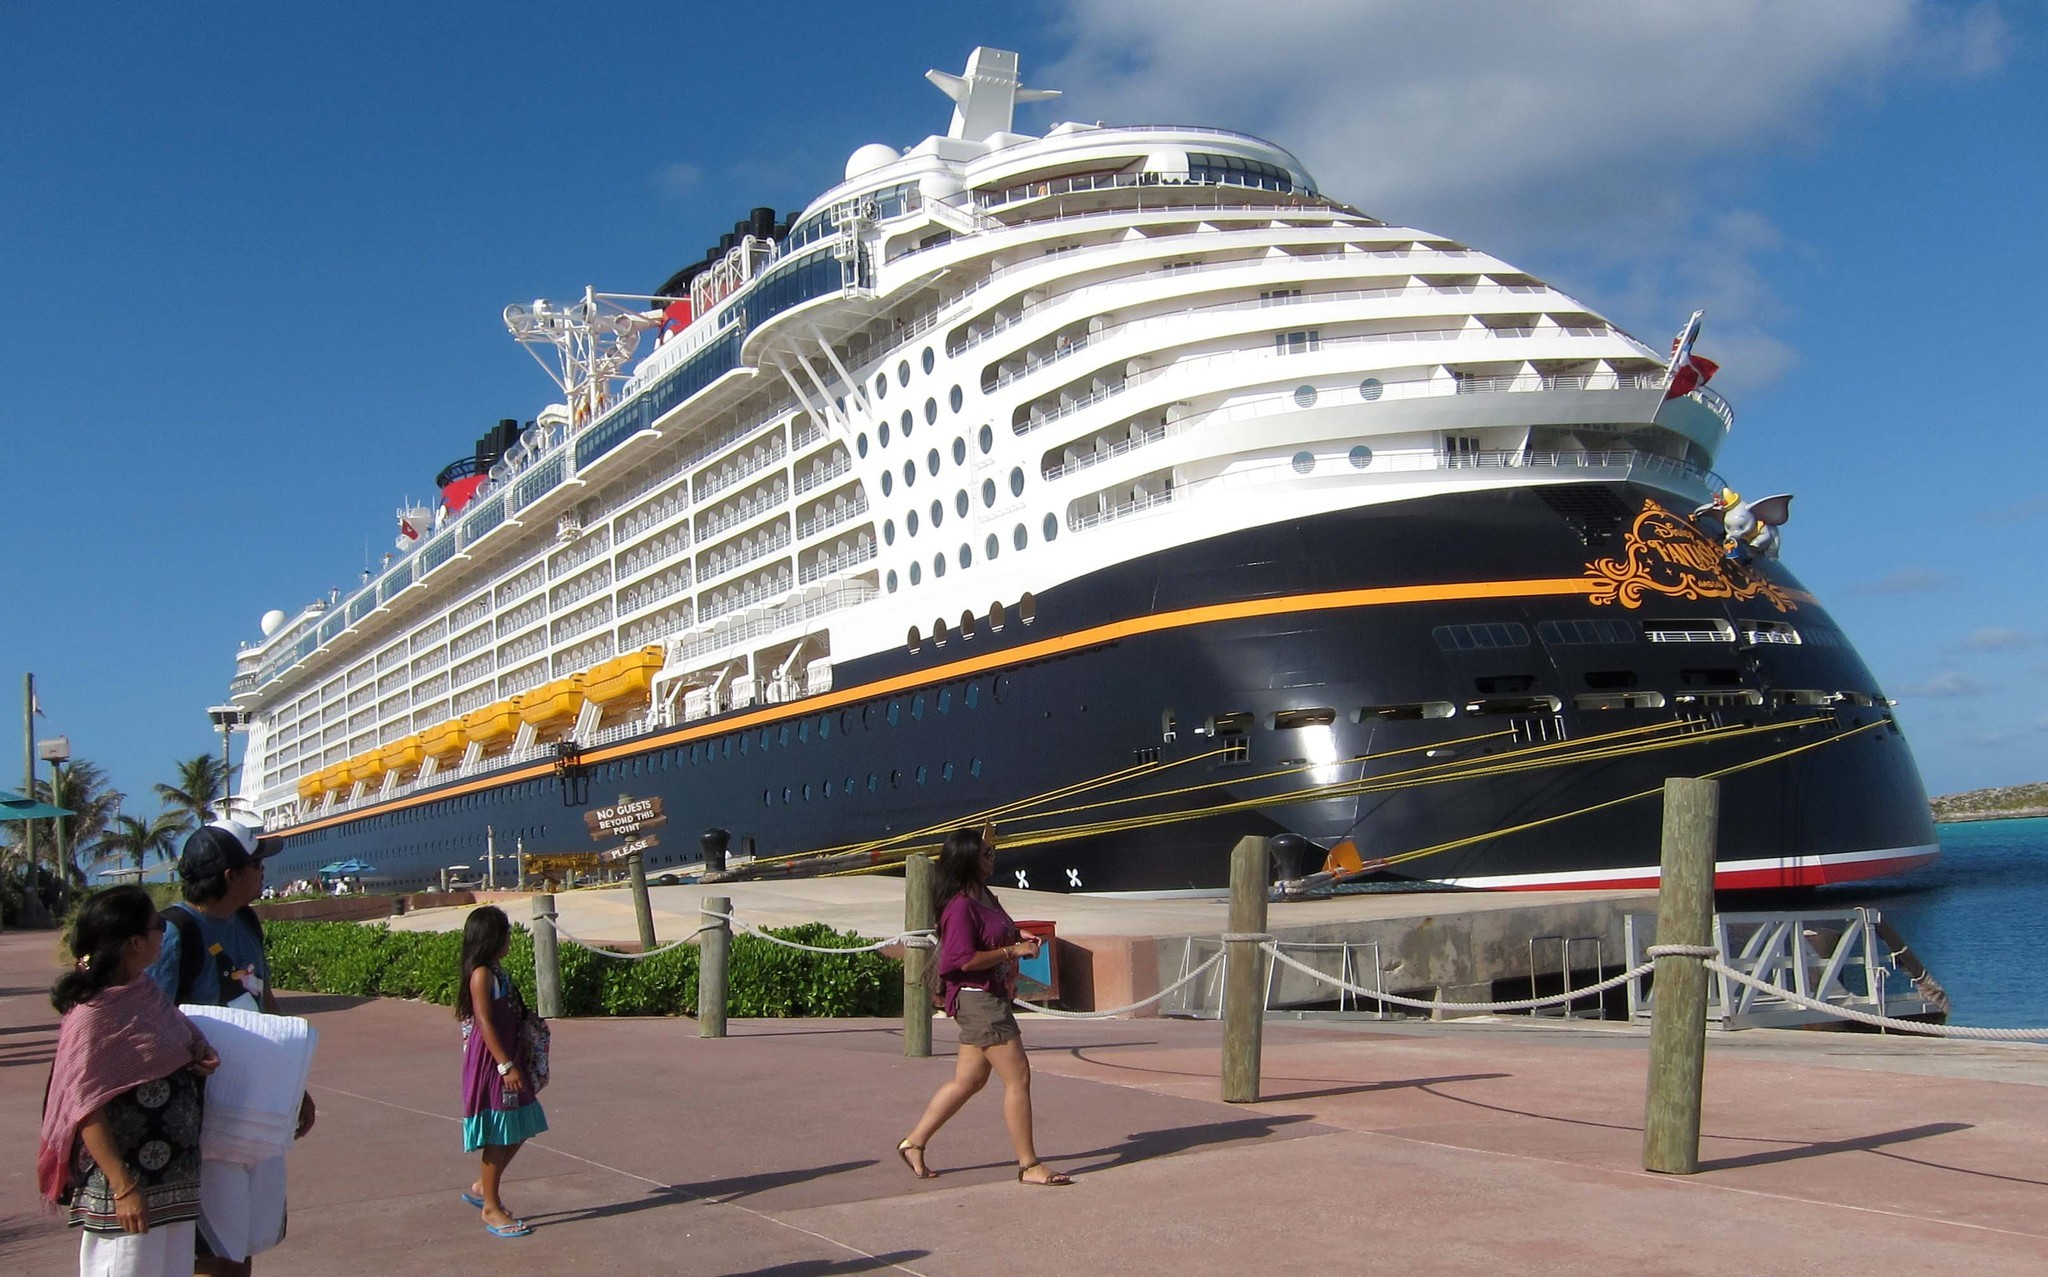 Florida Cruise Guide: Disney Fantasy pictures - Disney Fantasy inaugural cruise